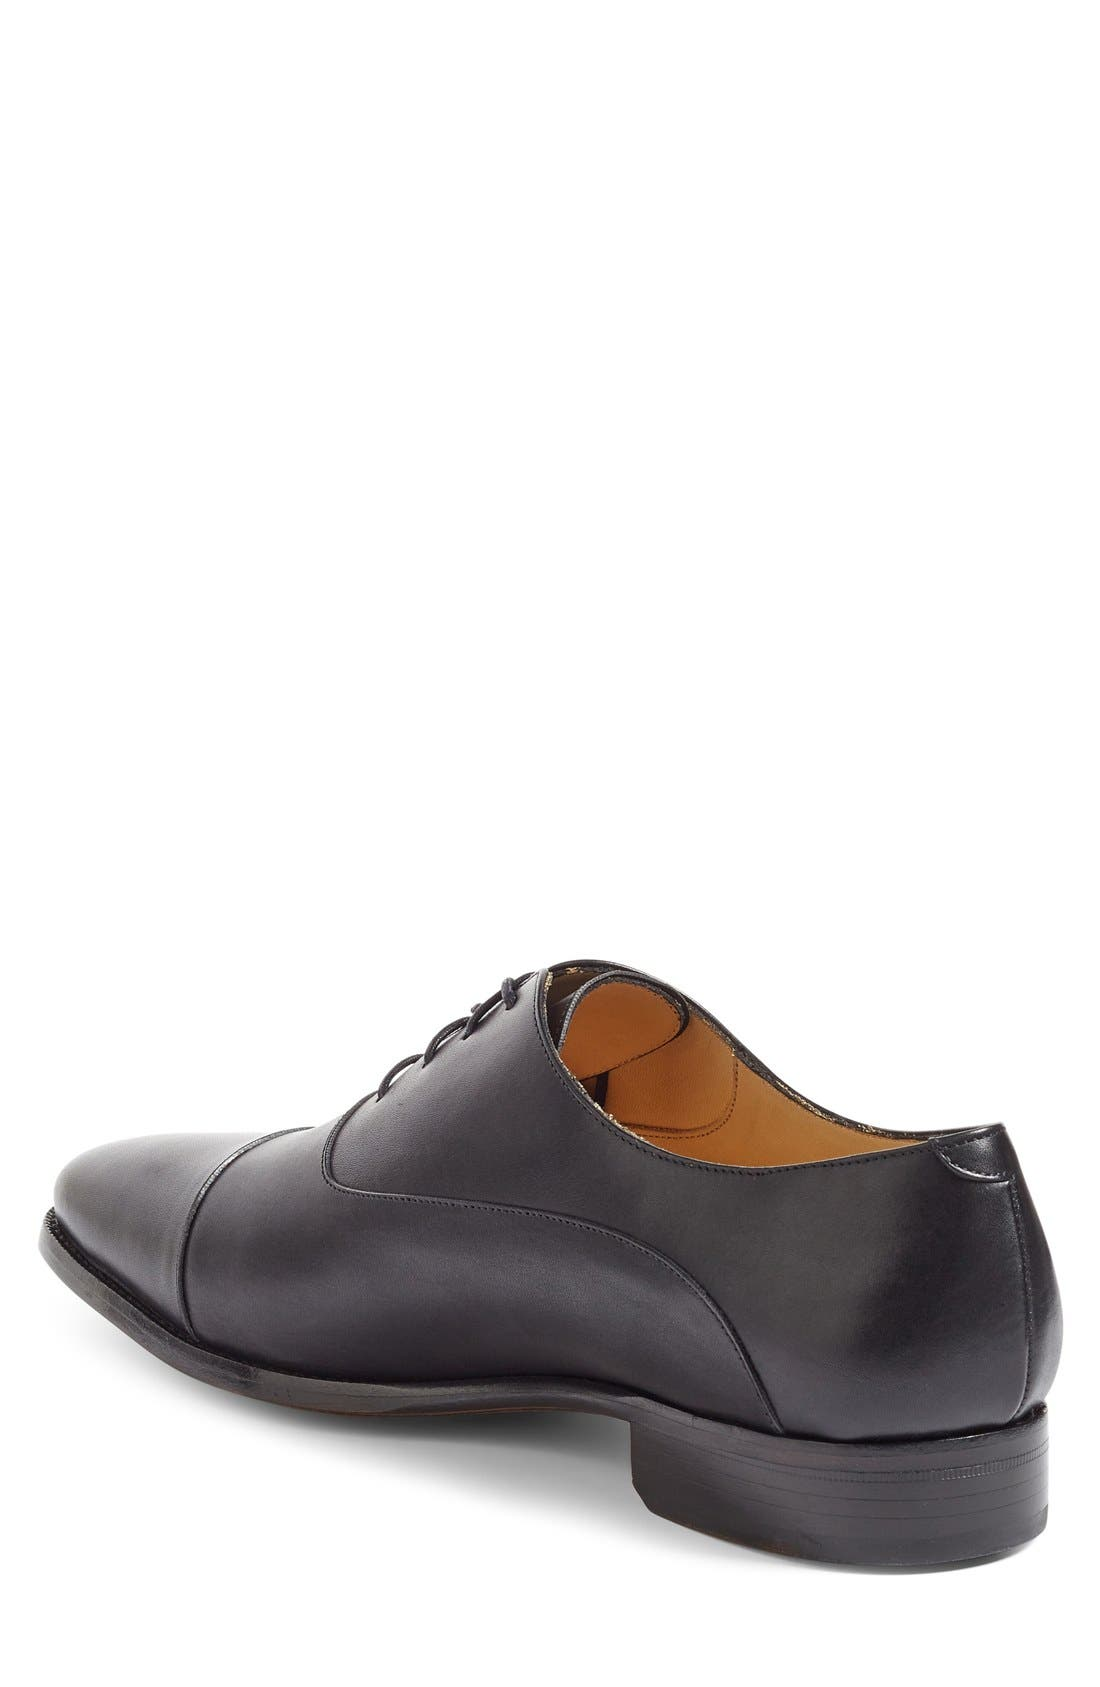 Alternate Image 2  - Jack Erwin Joe Cap Toe Oxford (Men)